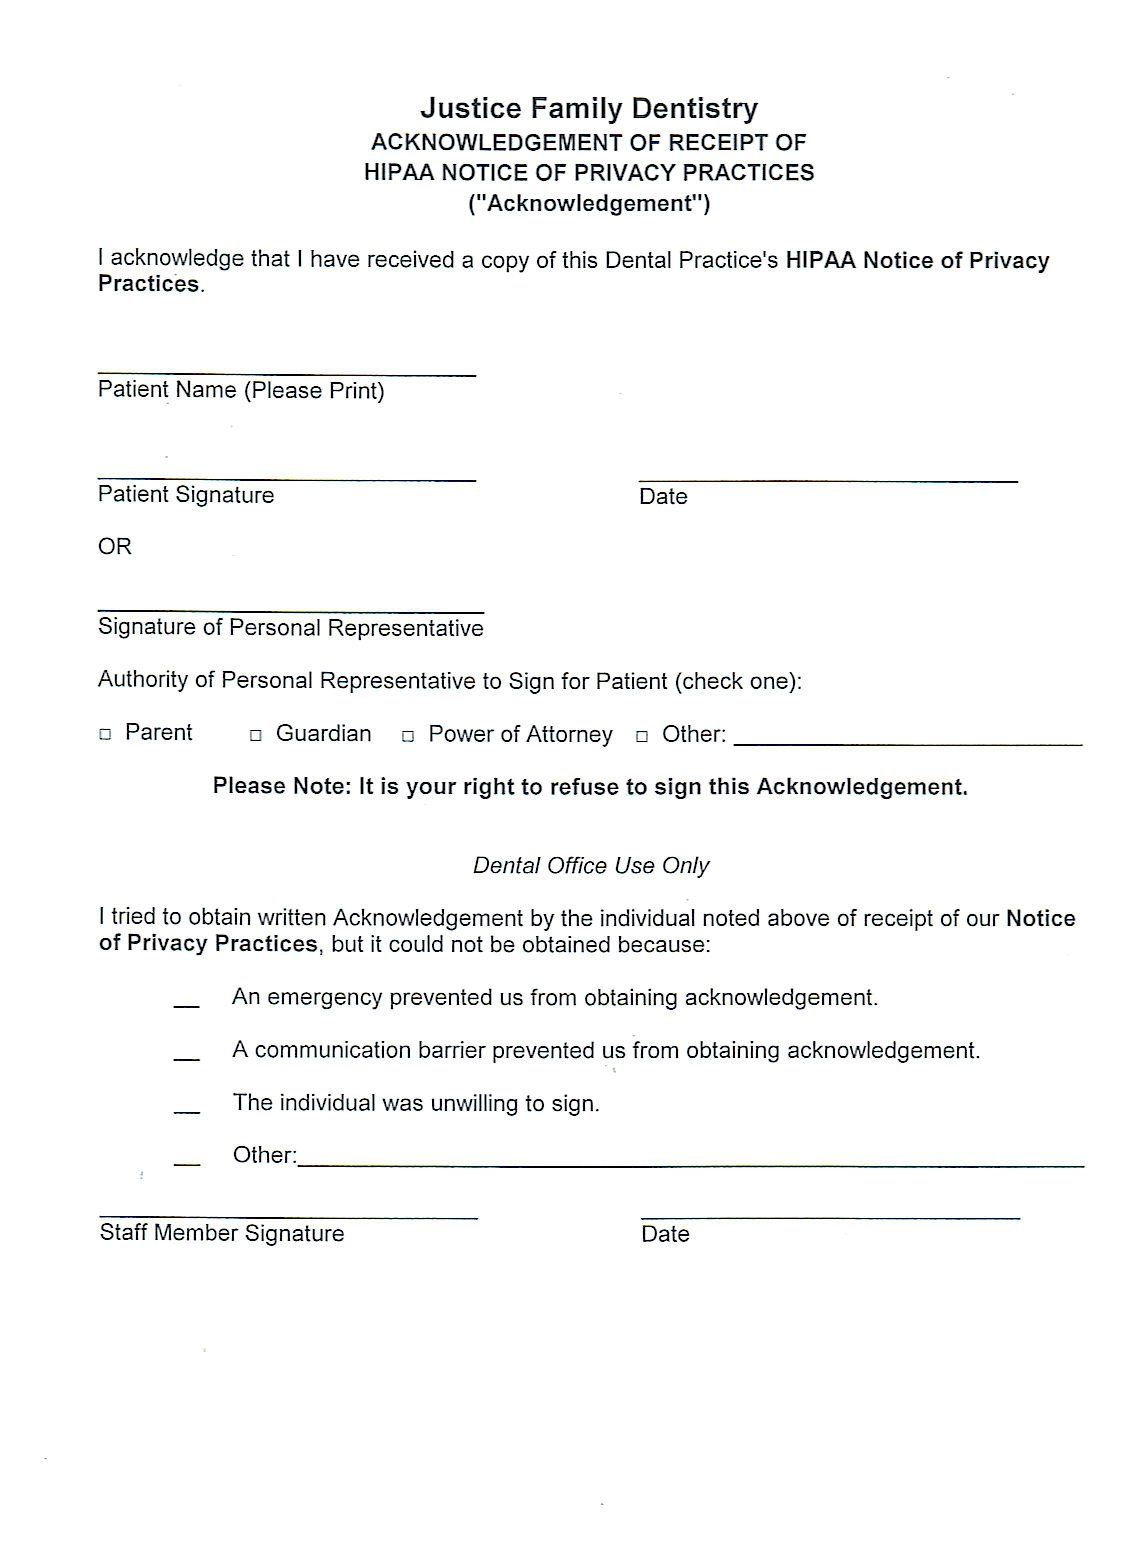 Free Printable Office Forms Lovely 71 Free Printable Hipaa Forms Free Printable Hipaa Forms Monthly Budget Template Dental Practice Family Dentistry